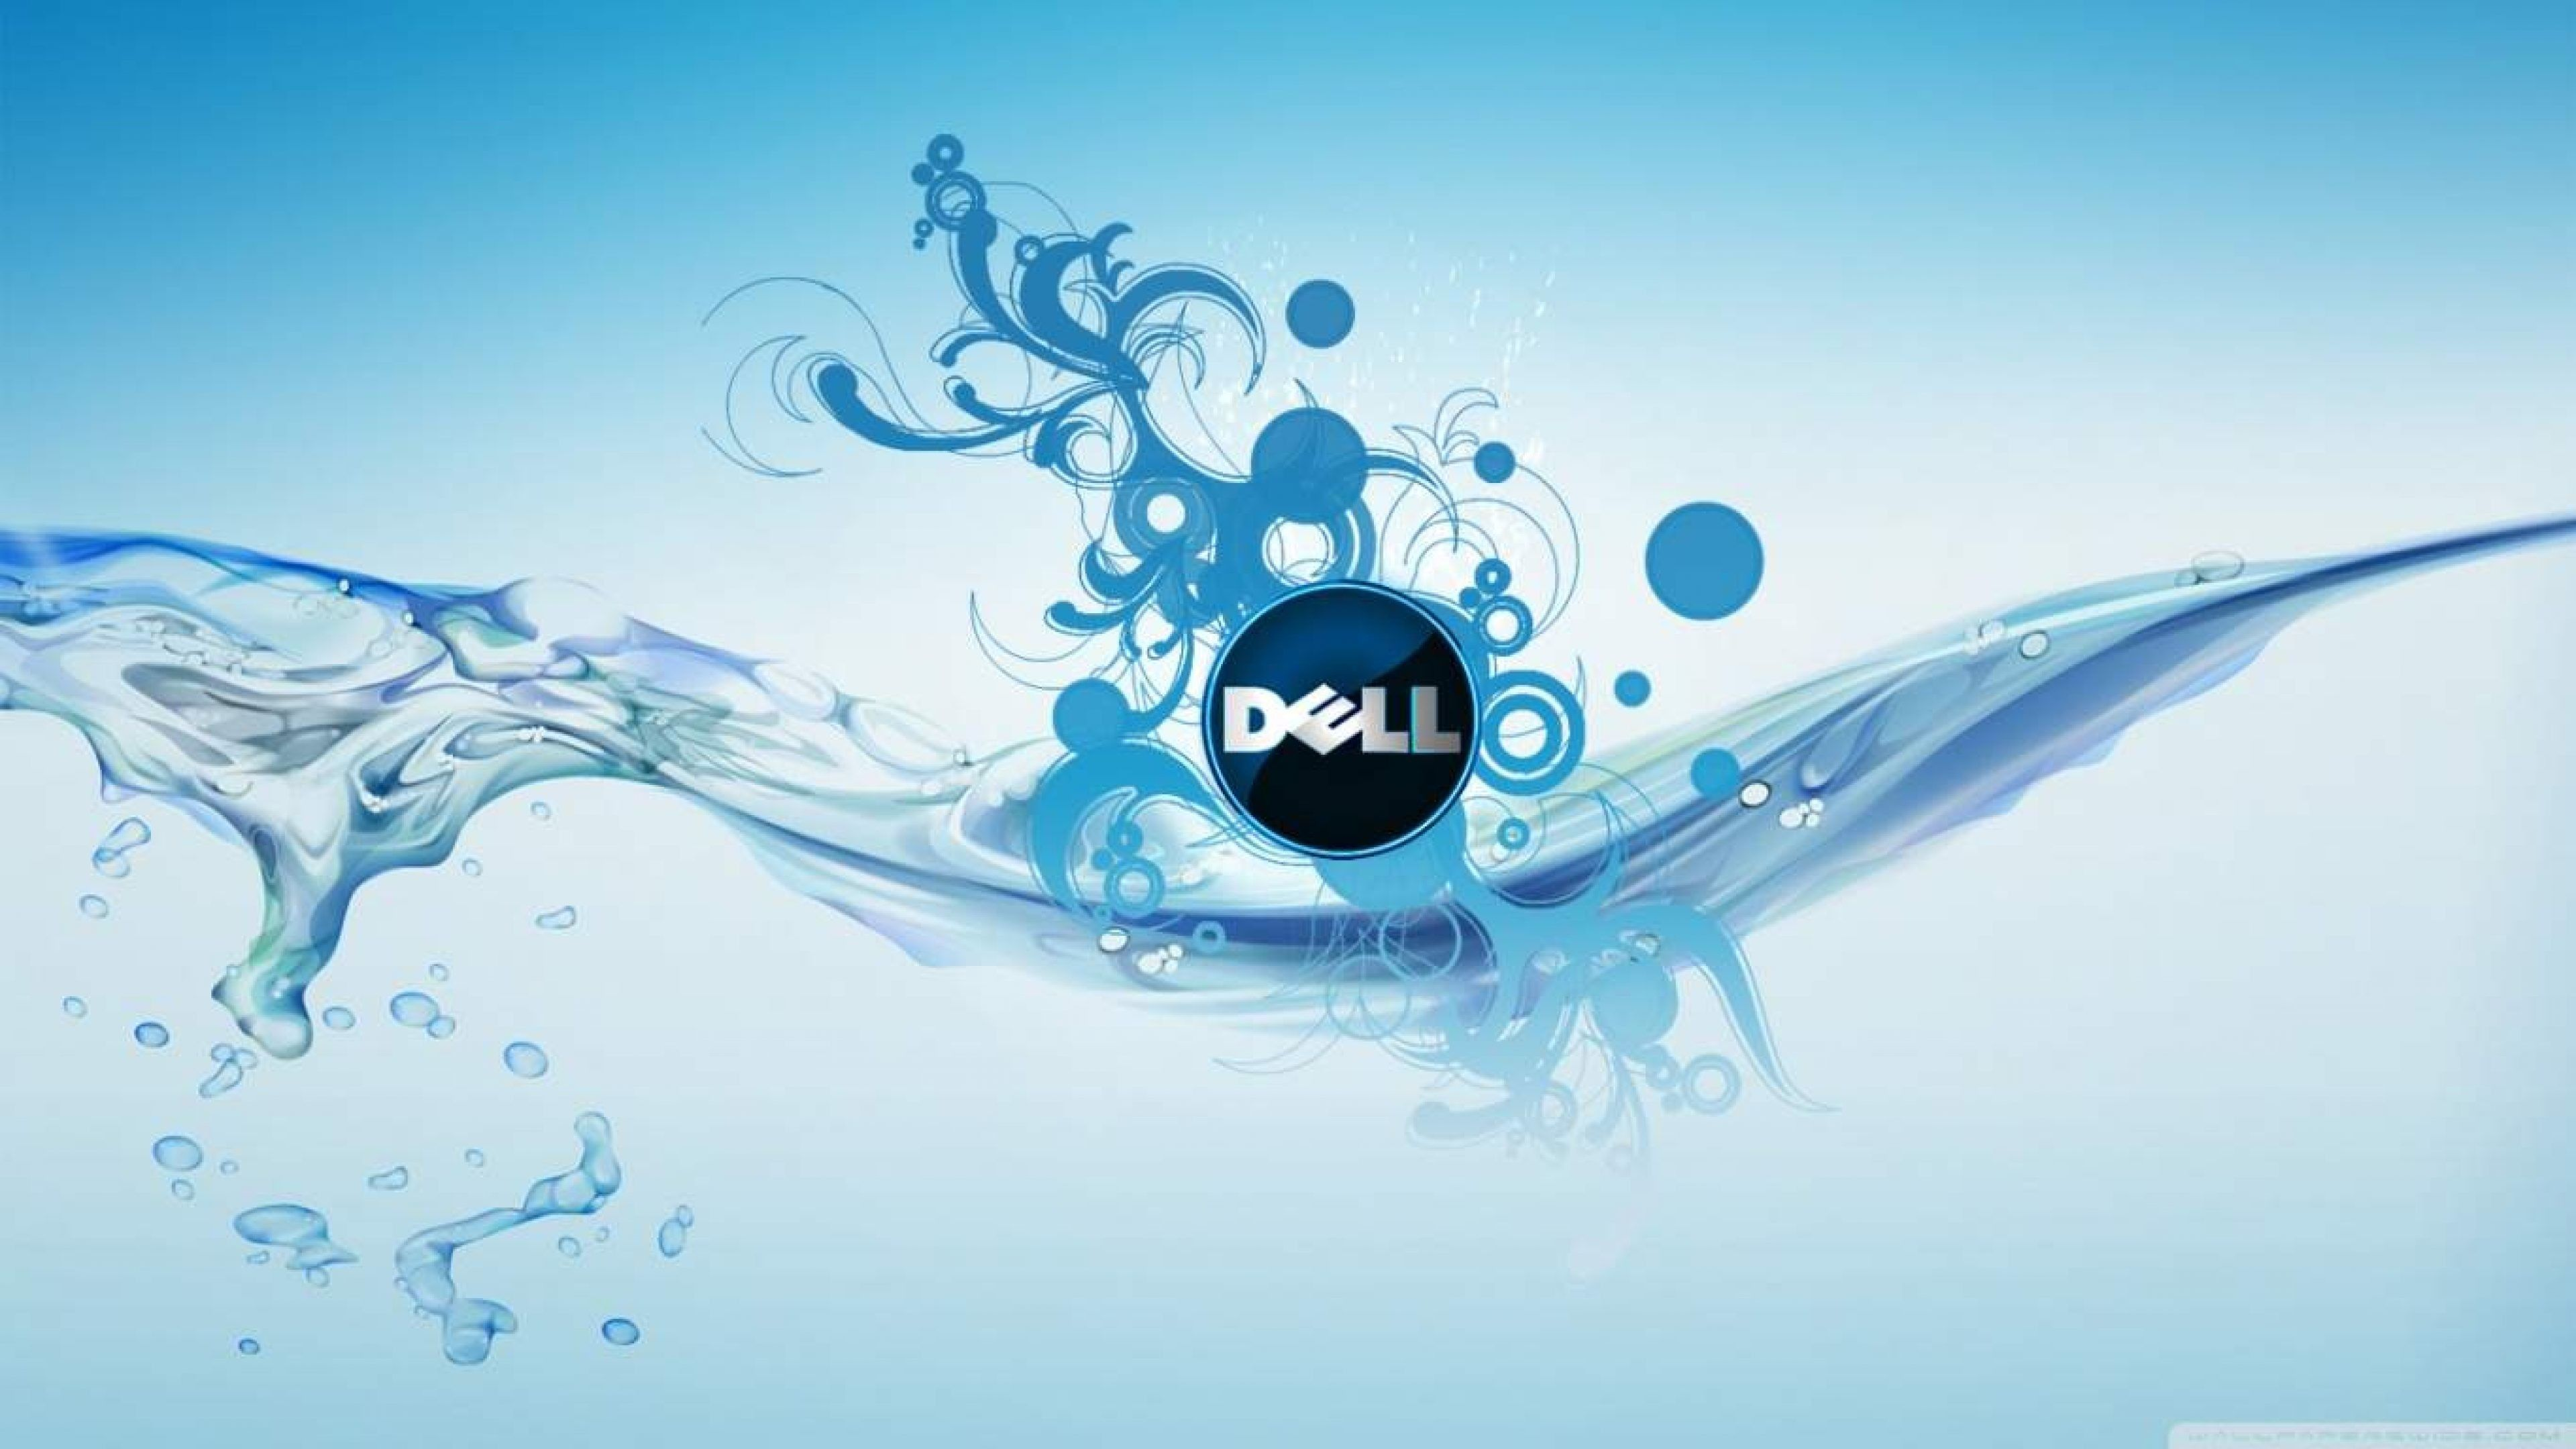 Dell Wallpaper Windows 10 72 Images Wallpaper Windows 10 Free Desktop Wallpaper Cute Desktop Wallpaper